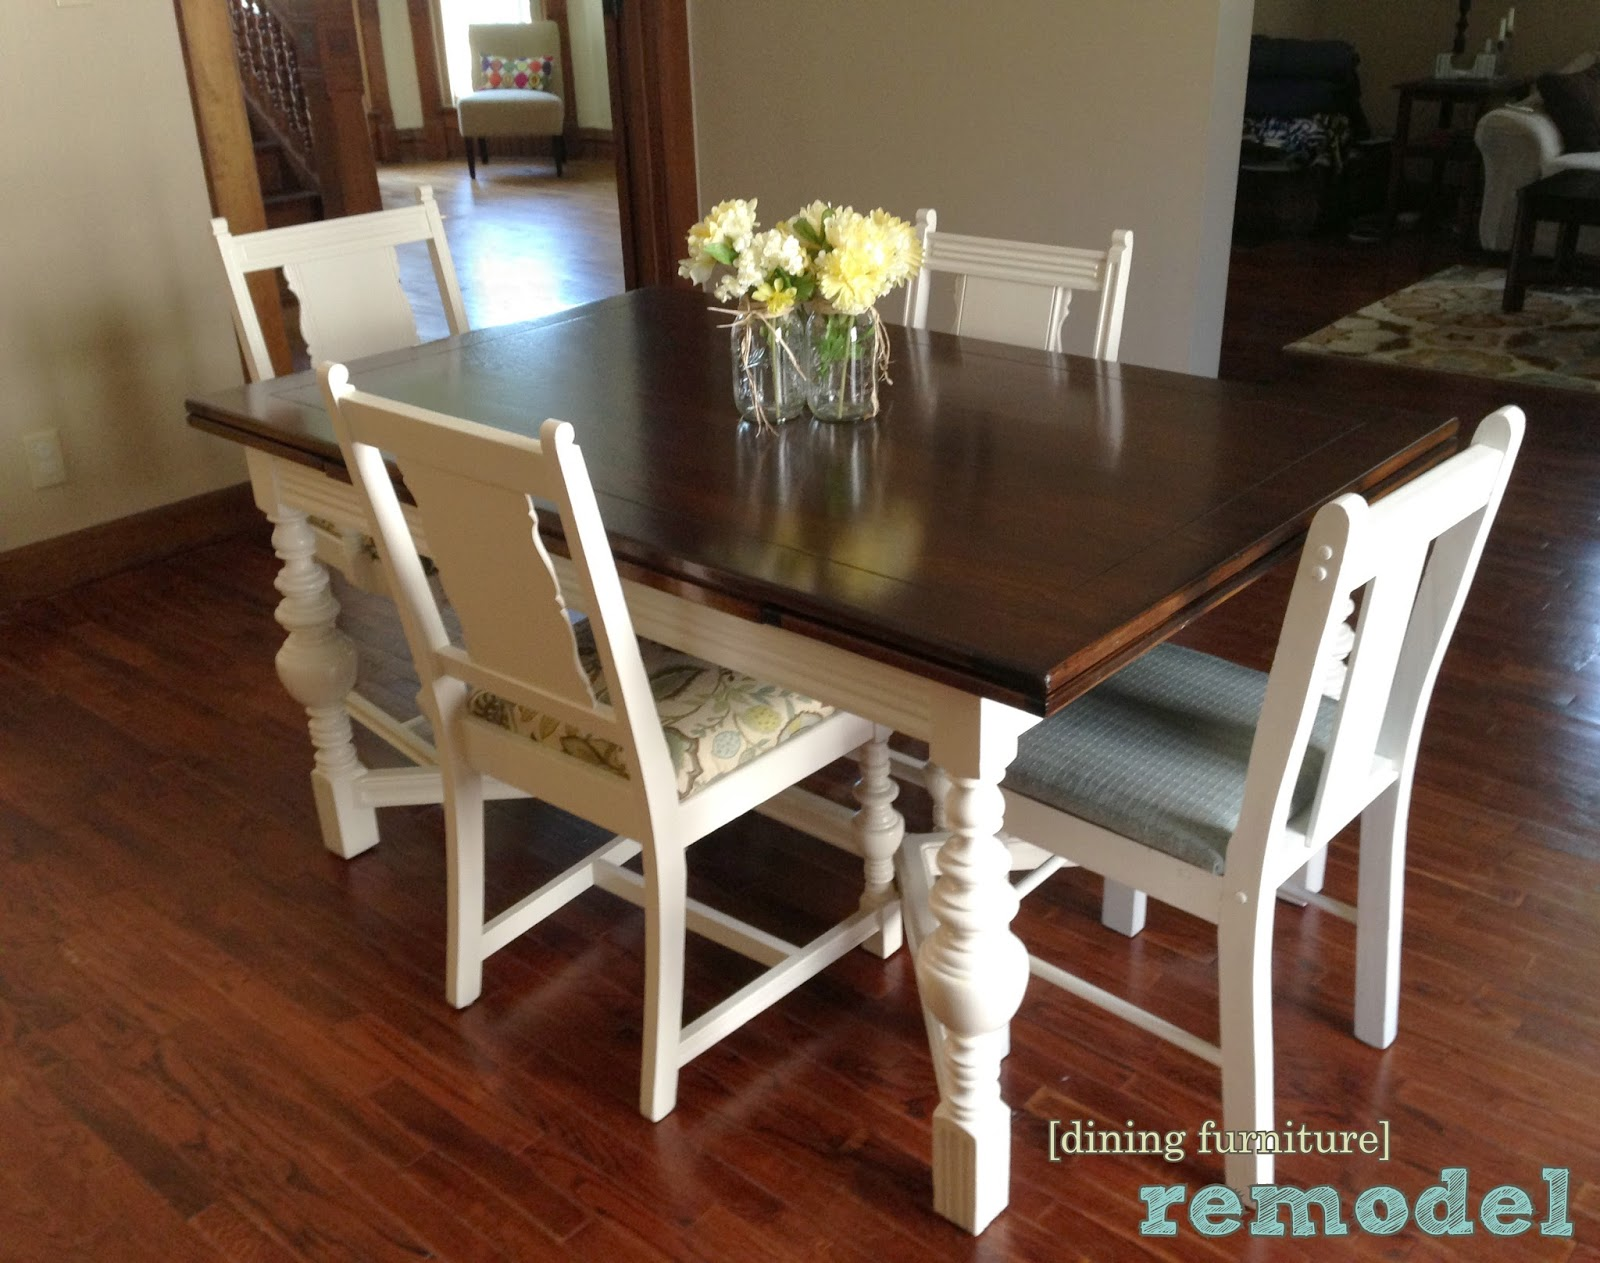 The Copper Coconut Dining Table And Chairs Redo